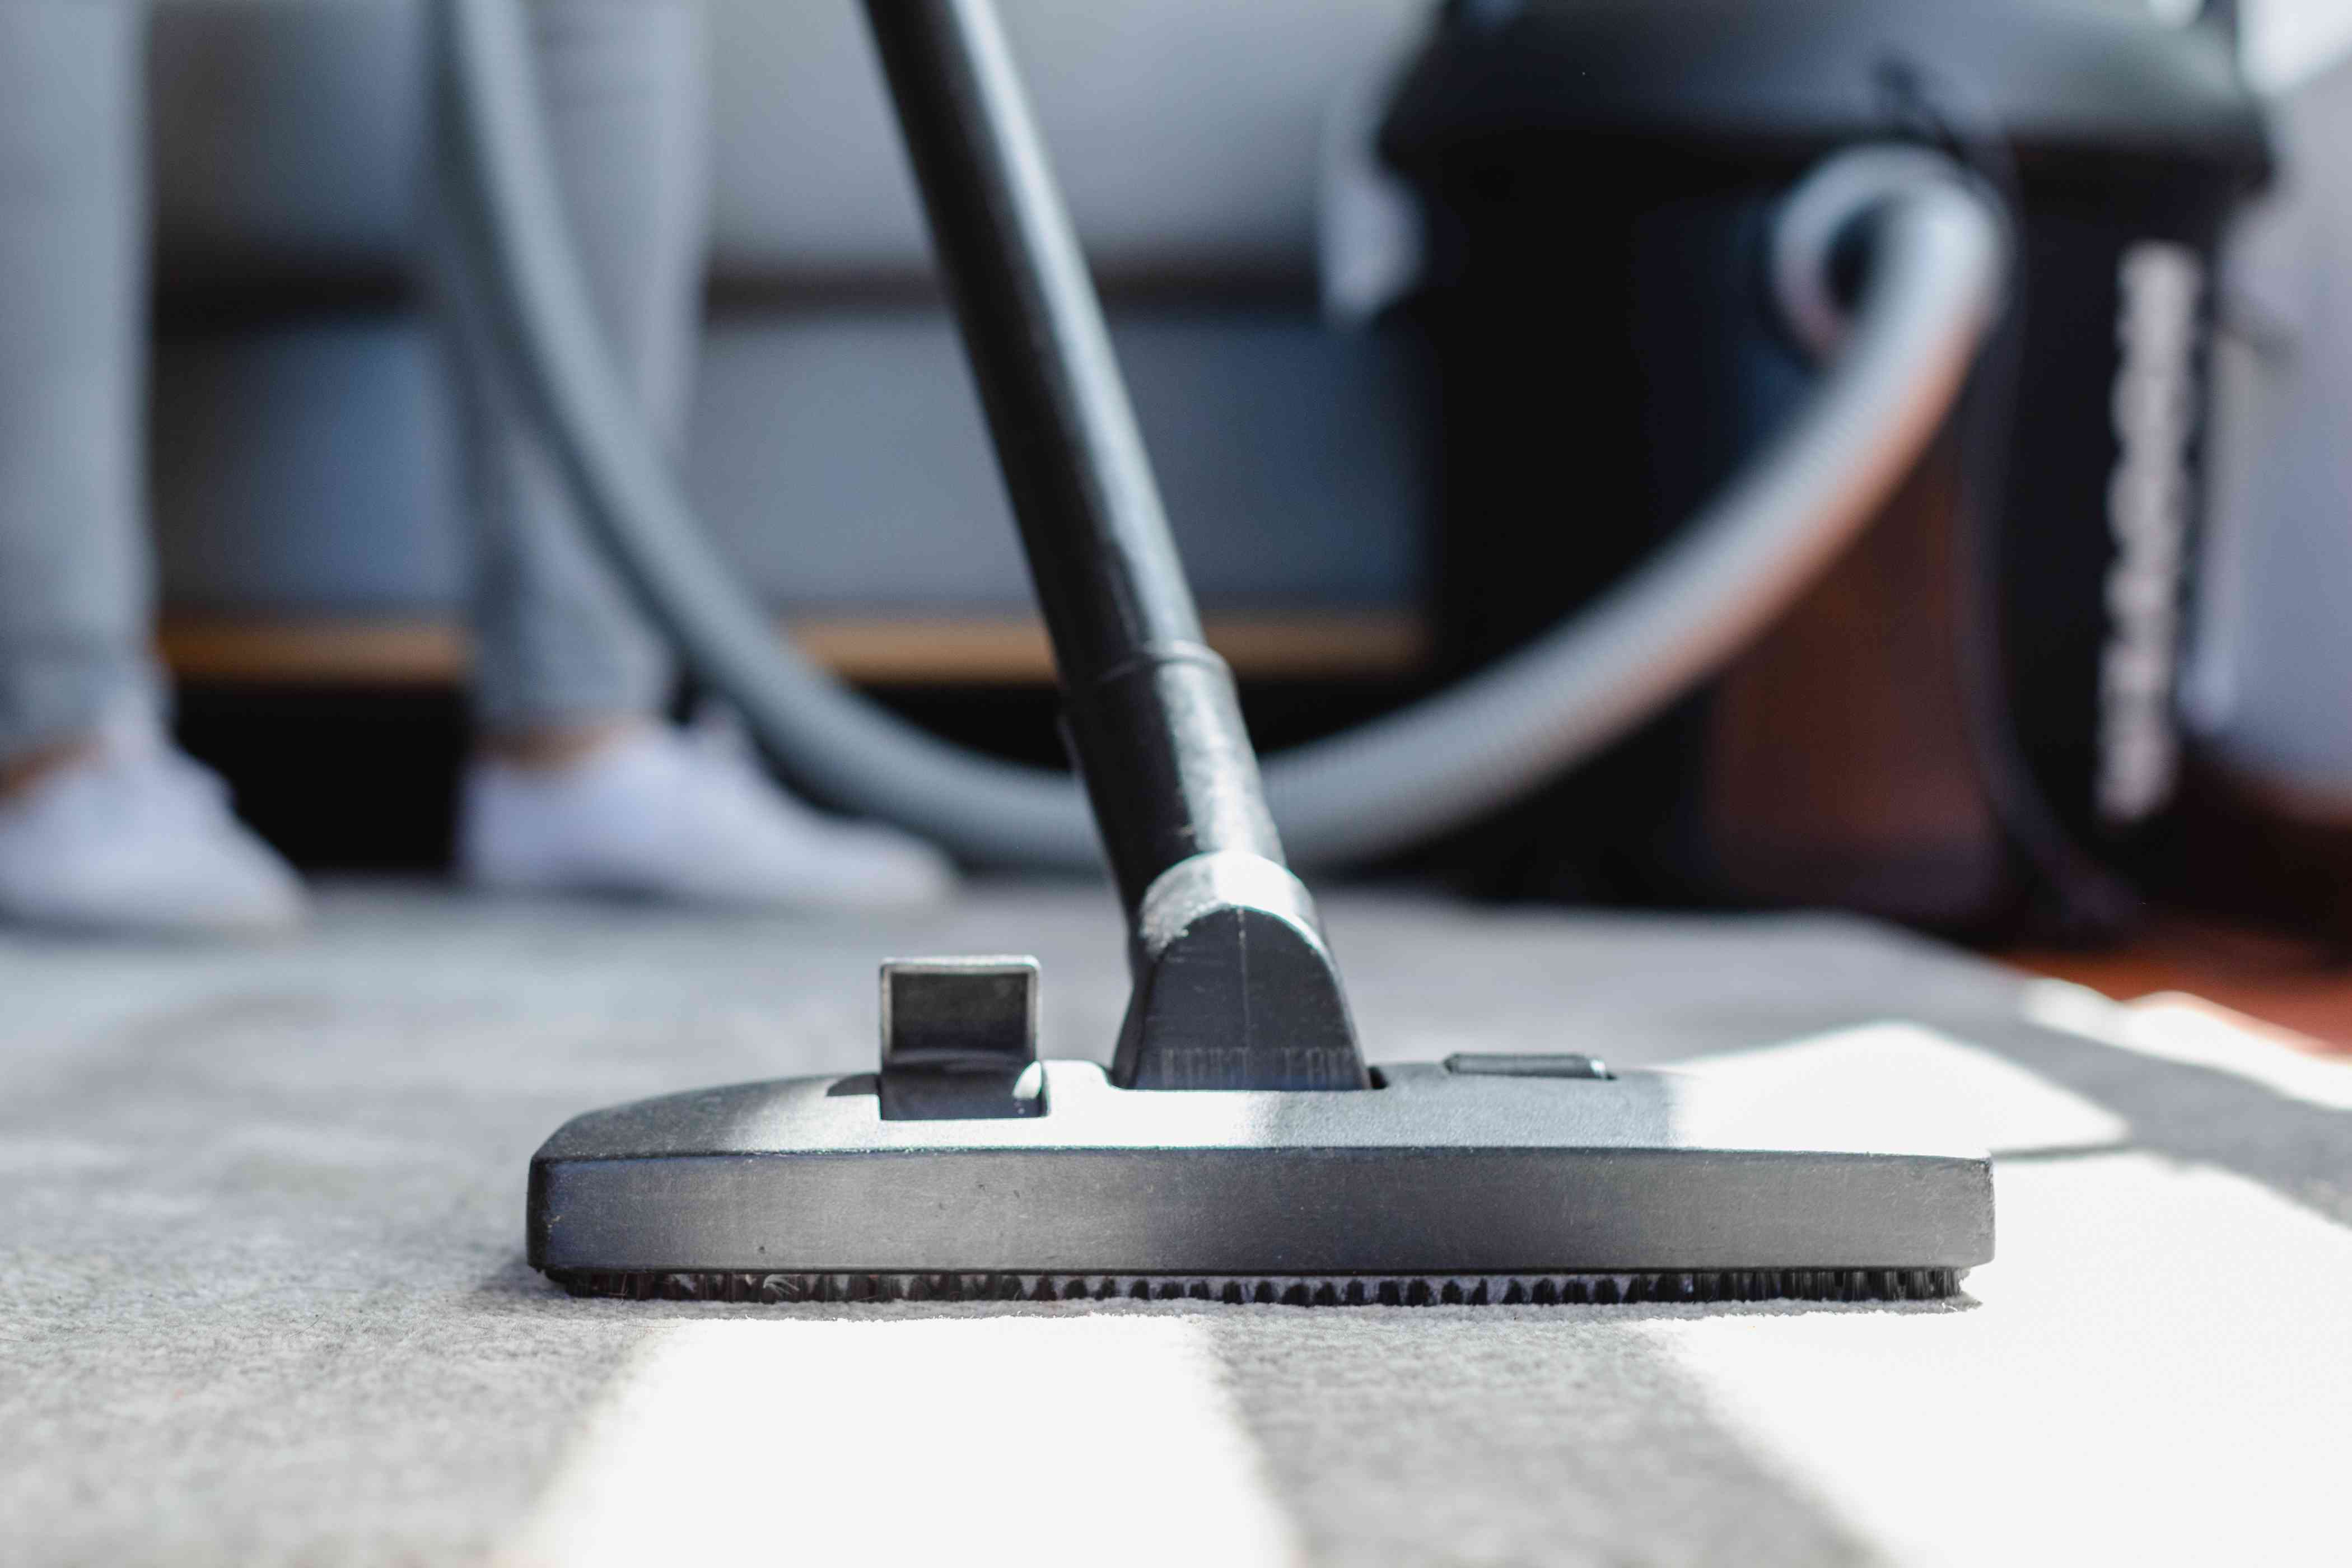 Upright vacuum cleaner head with beater bar lifted up